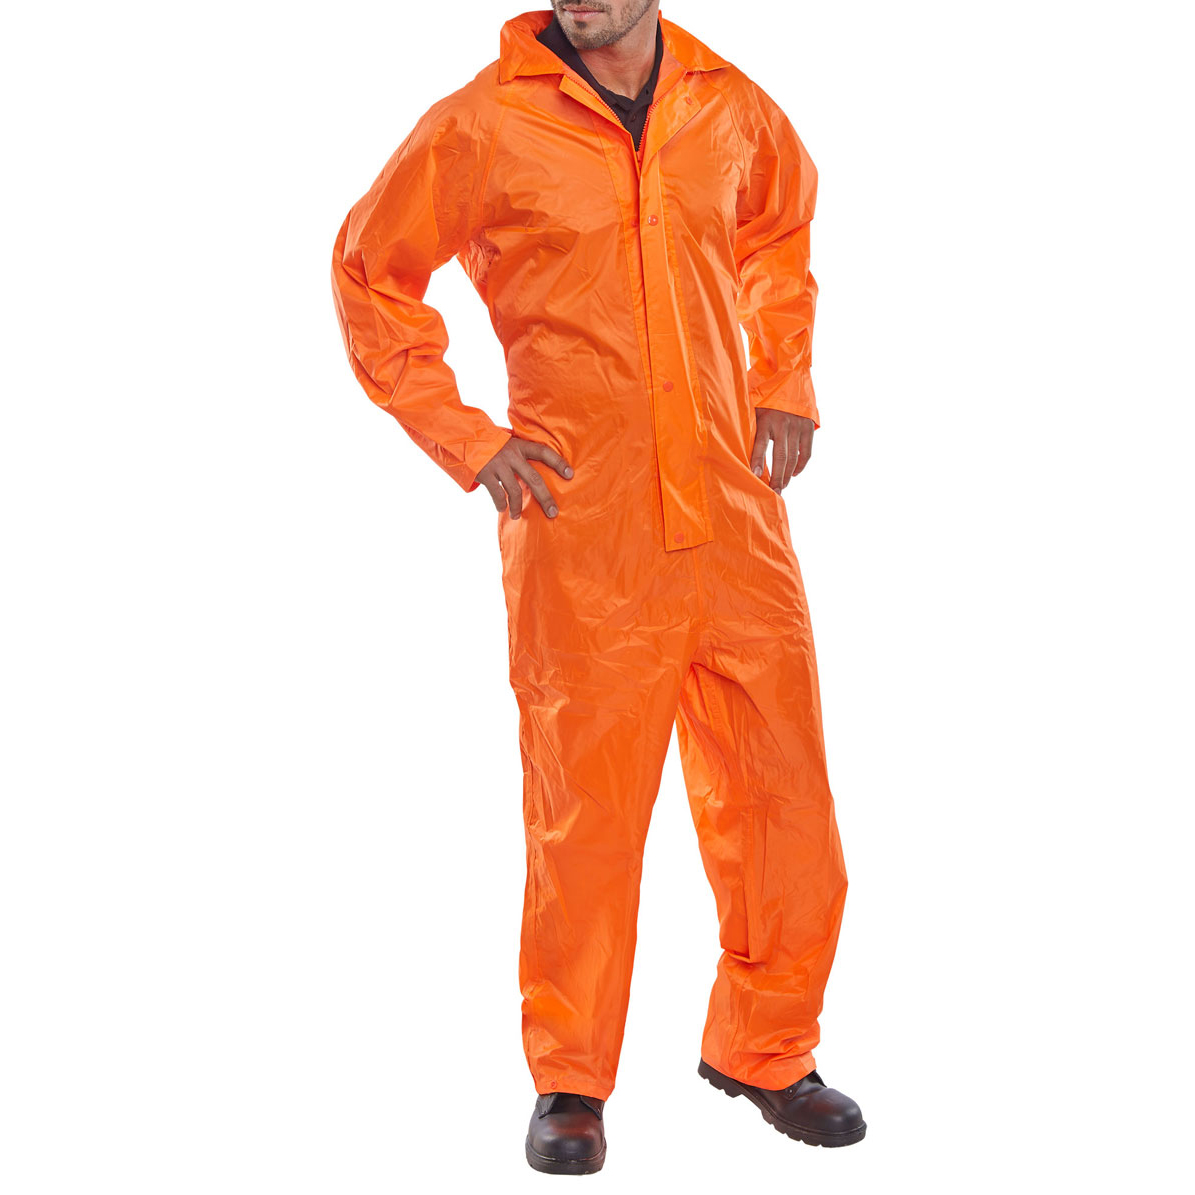 Coveralls / Overalls B-Dri Weatherproof Coveralls Nylon XL Orange Ref NBDCORXL *Up to 3 Day Leadtime*